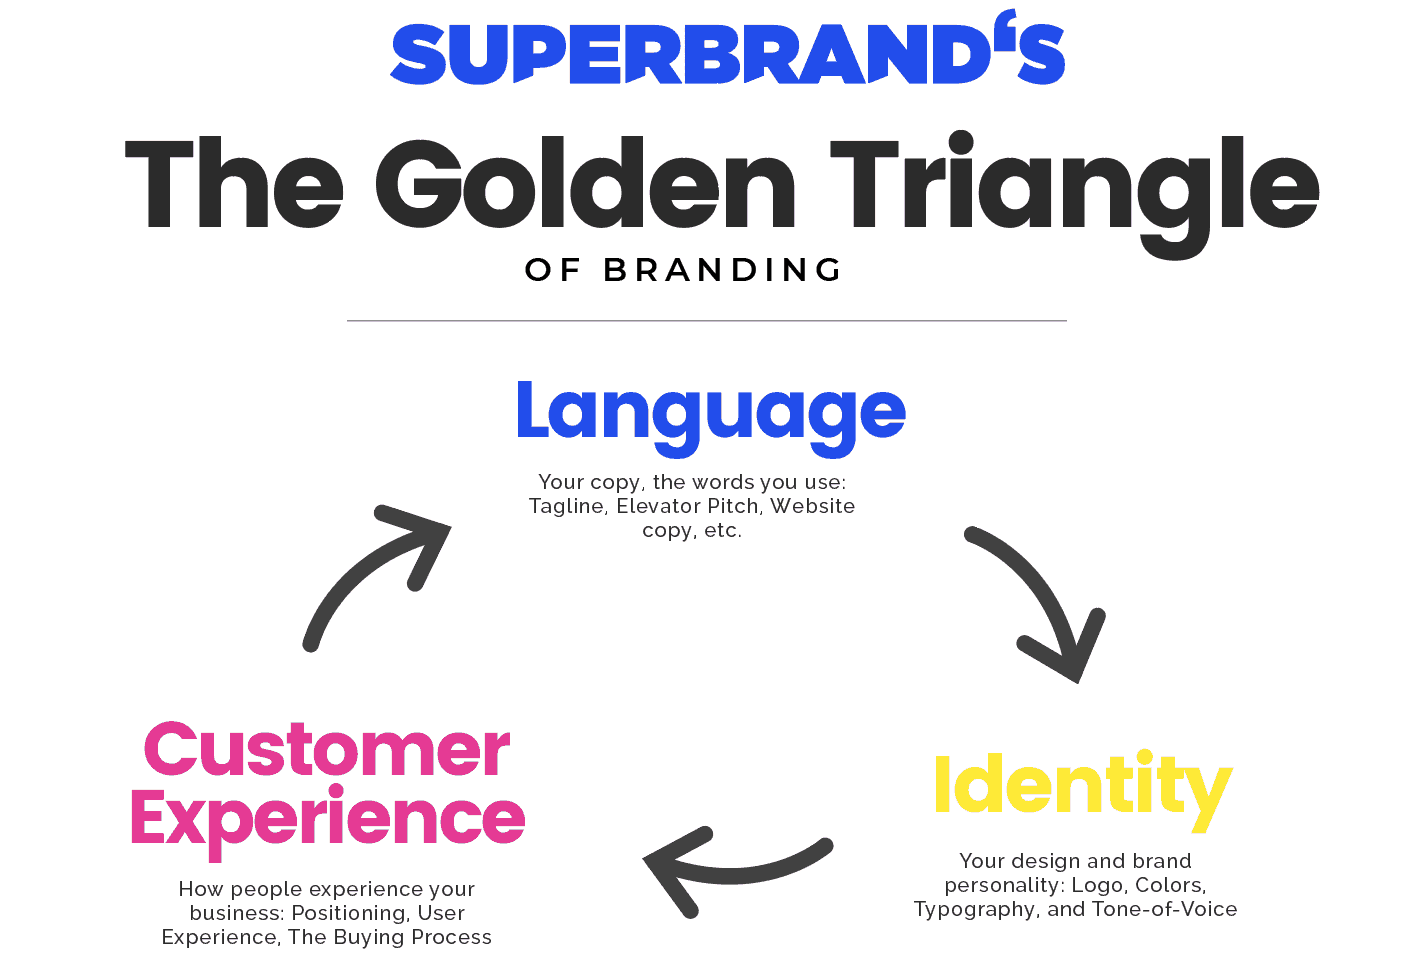 Diagram of branding for positioning your business marketing efforts